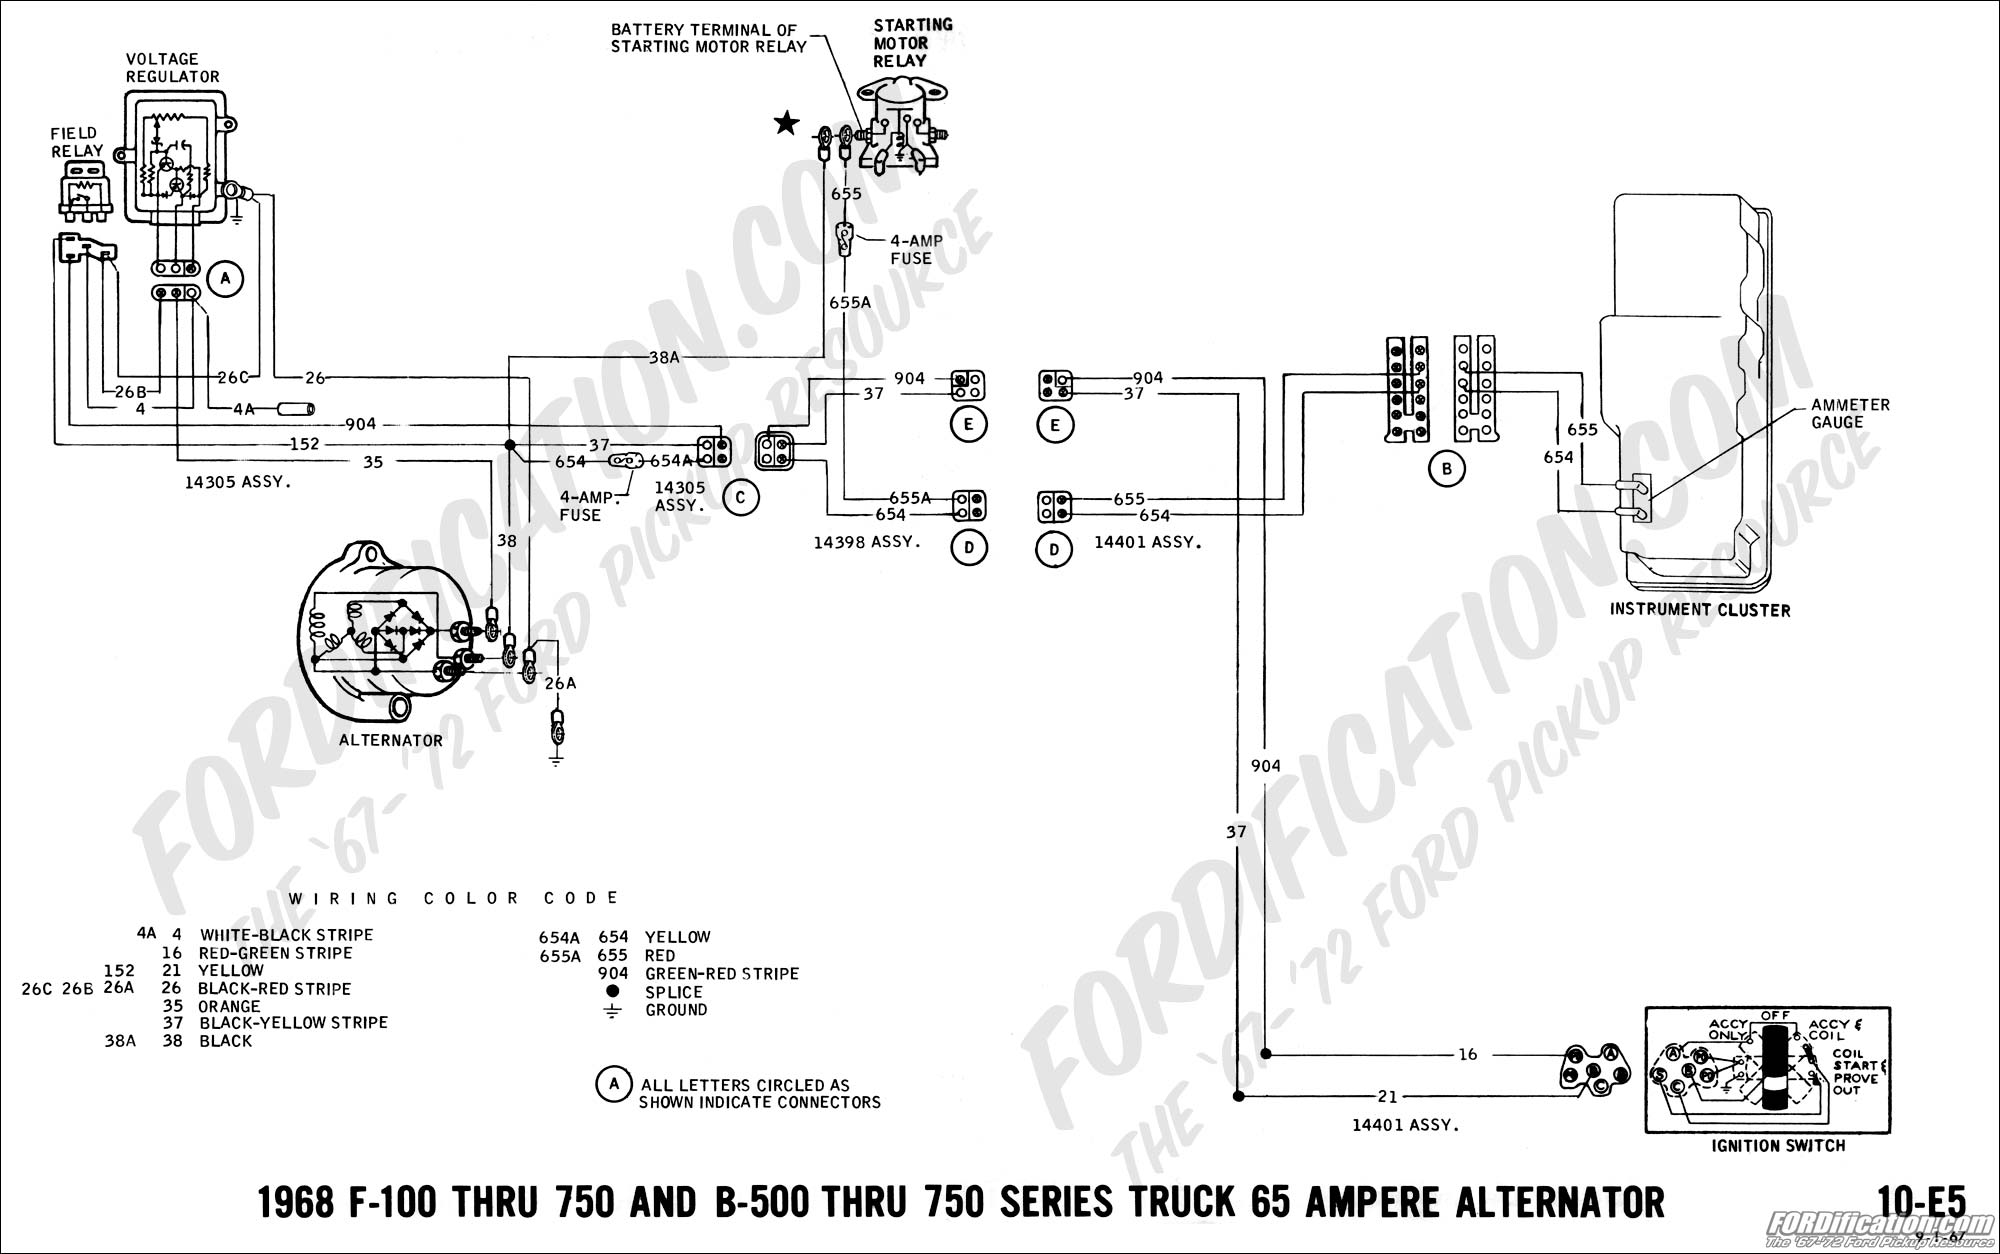 ford truck technical drawings and schematics section h wiring 1968 f 100 thru f 350 ignition starting charging and gauges 1 of 2